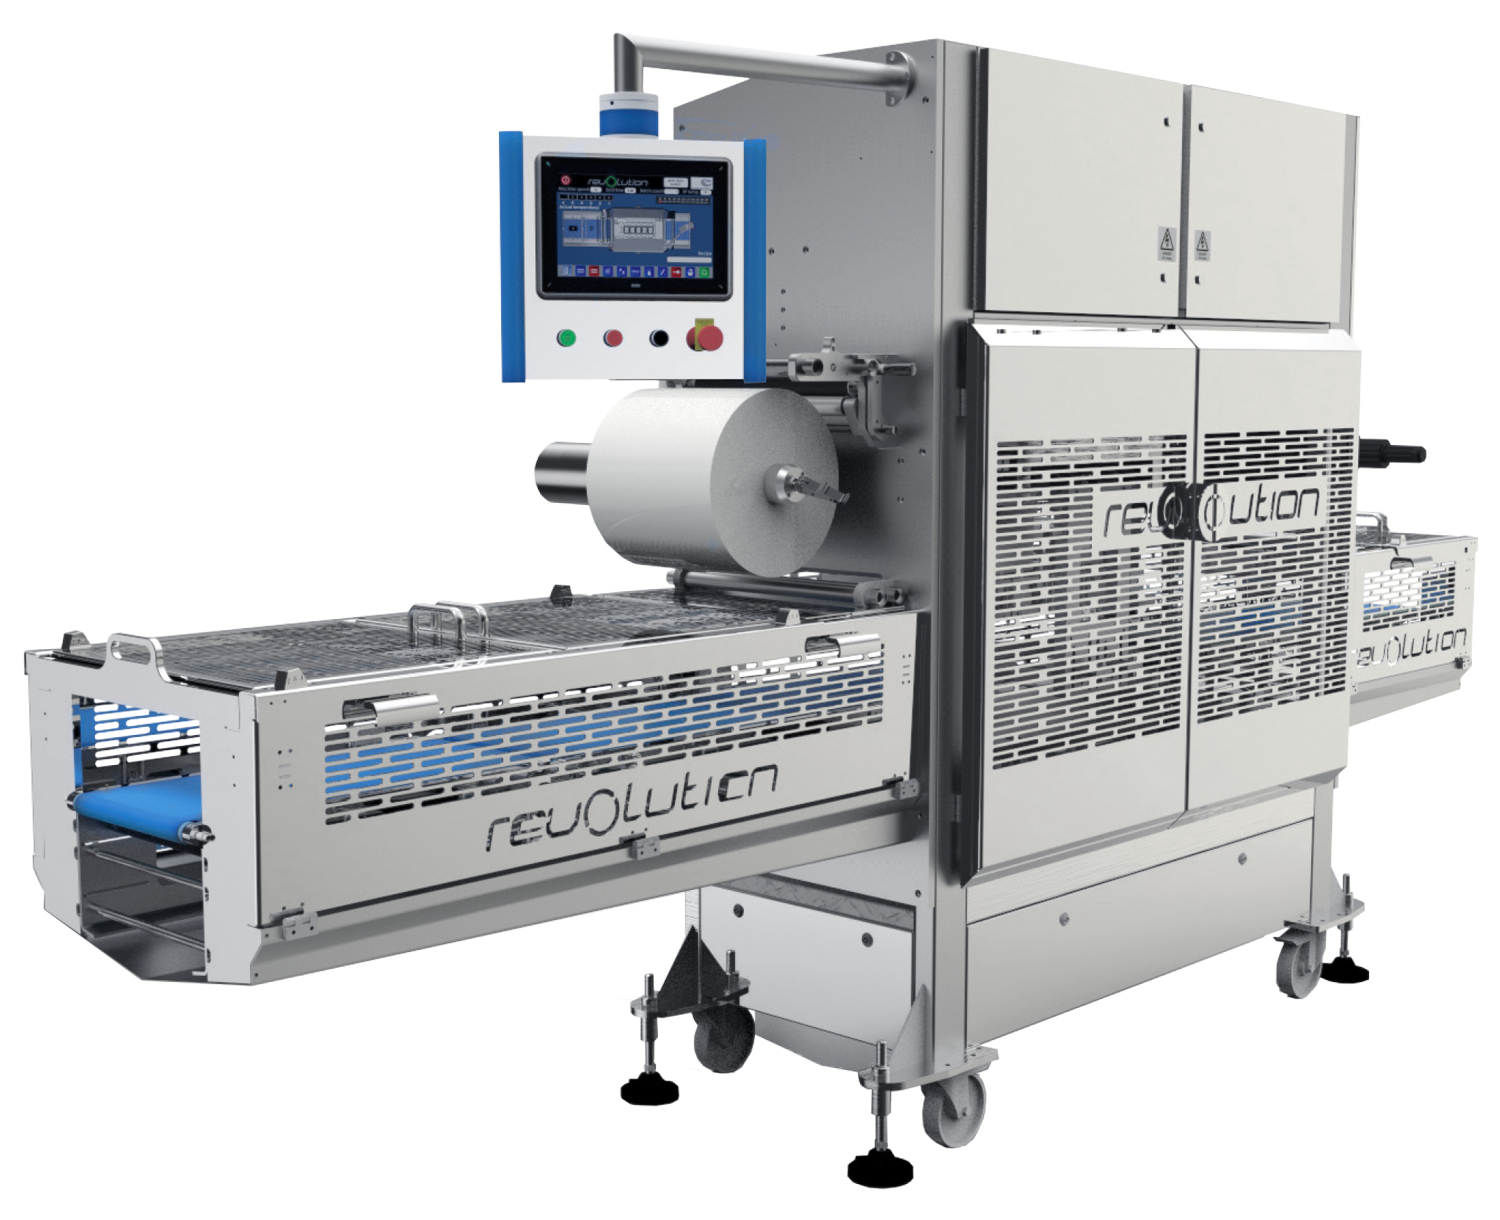 Packaging Automation's Revolution is a fully automatic tray sealing machine.